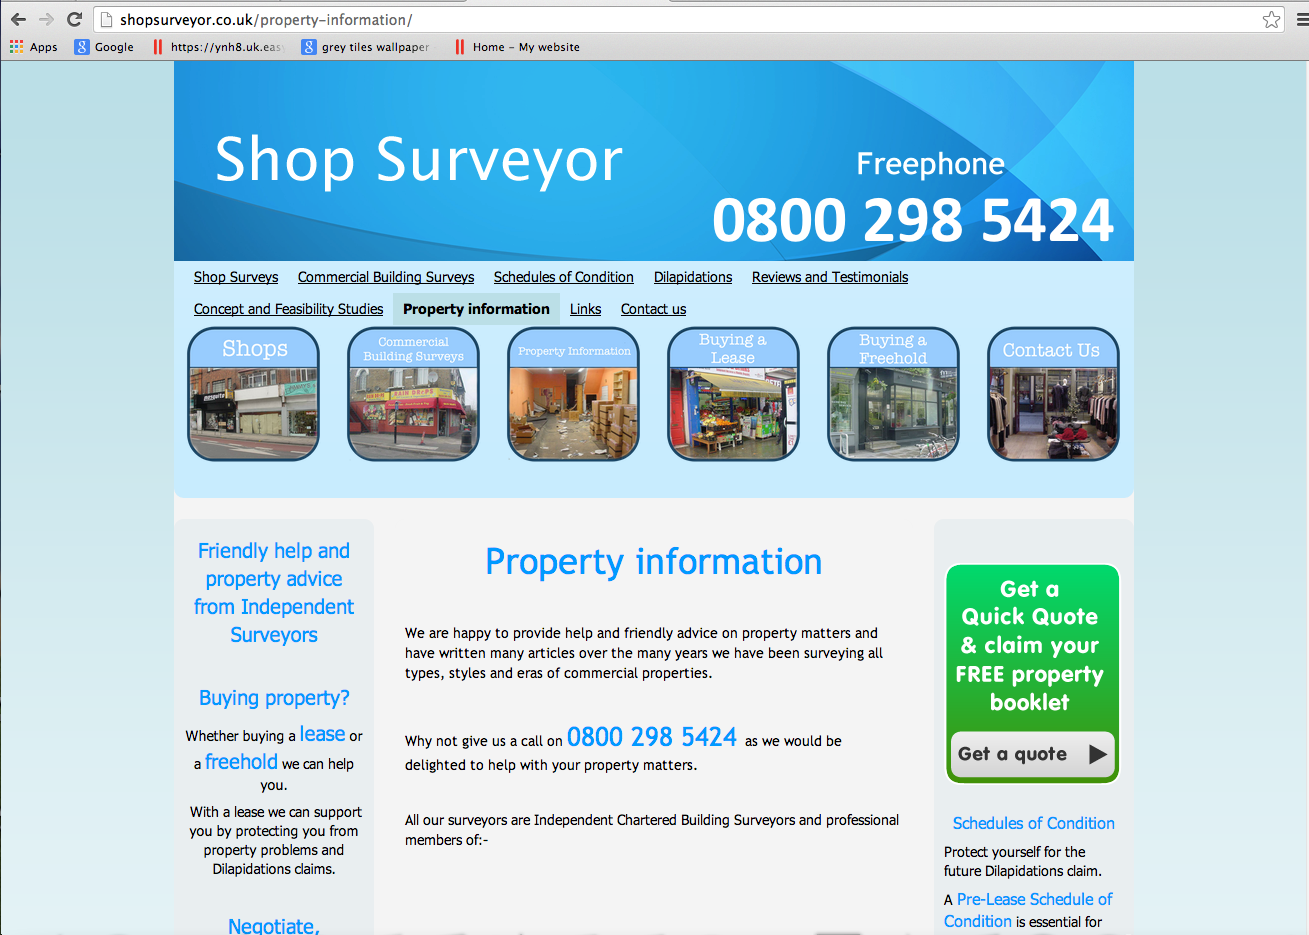 Shopsurveyor.co.uk - Property Information